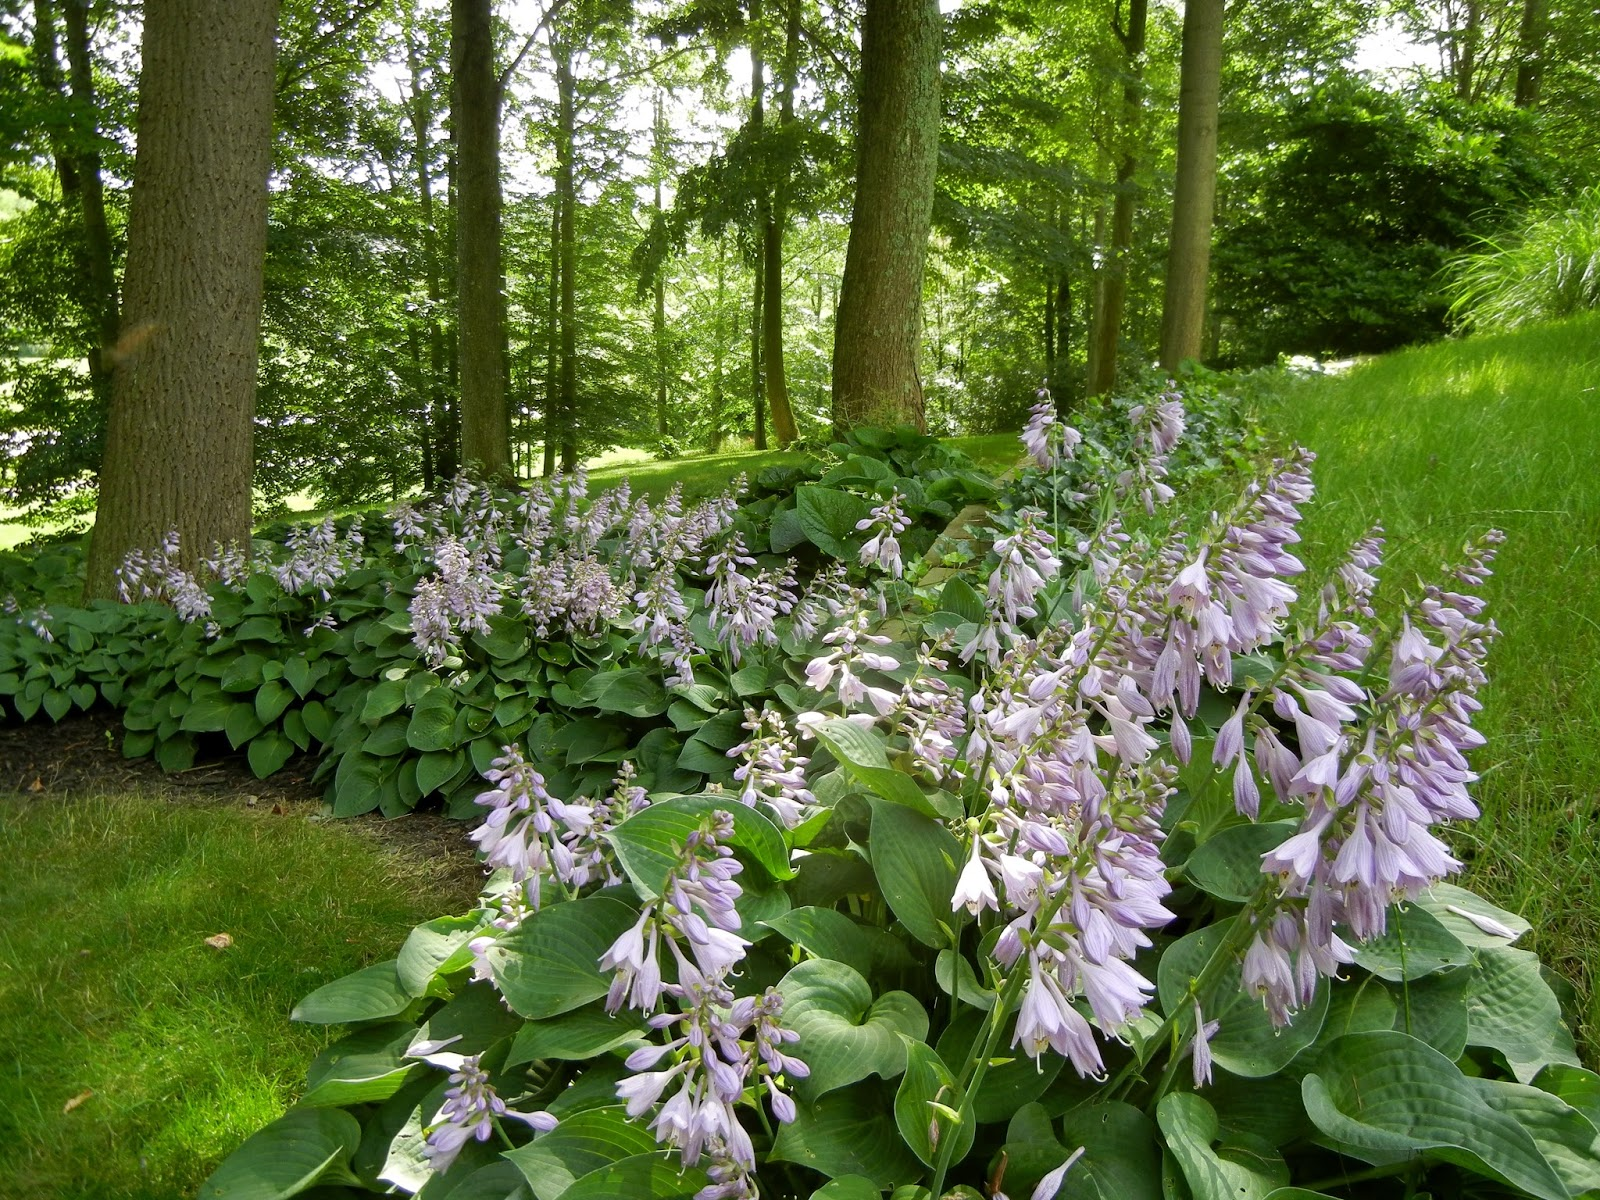 The Front Yard Hostas Are In Bloom. The Only Reason We Get To Enjoy Their  Show Is Husband Now Uses Bobbex Repellent Every 2 Weeks. The Deer Have  Become More ...